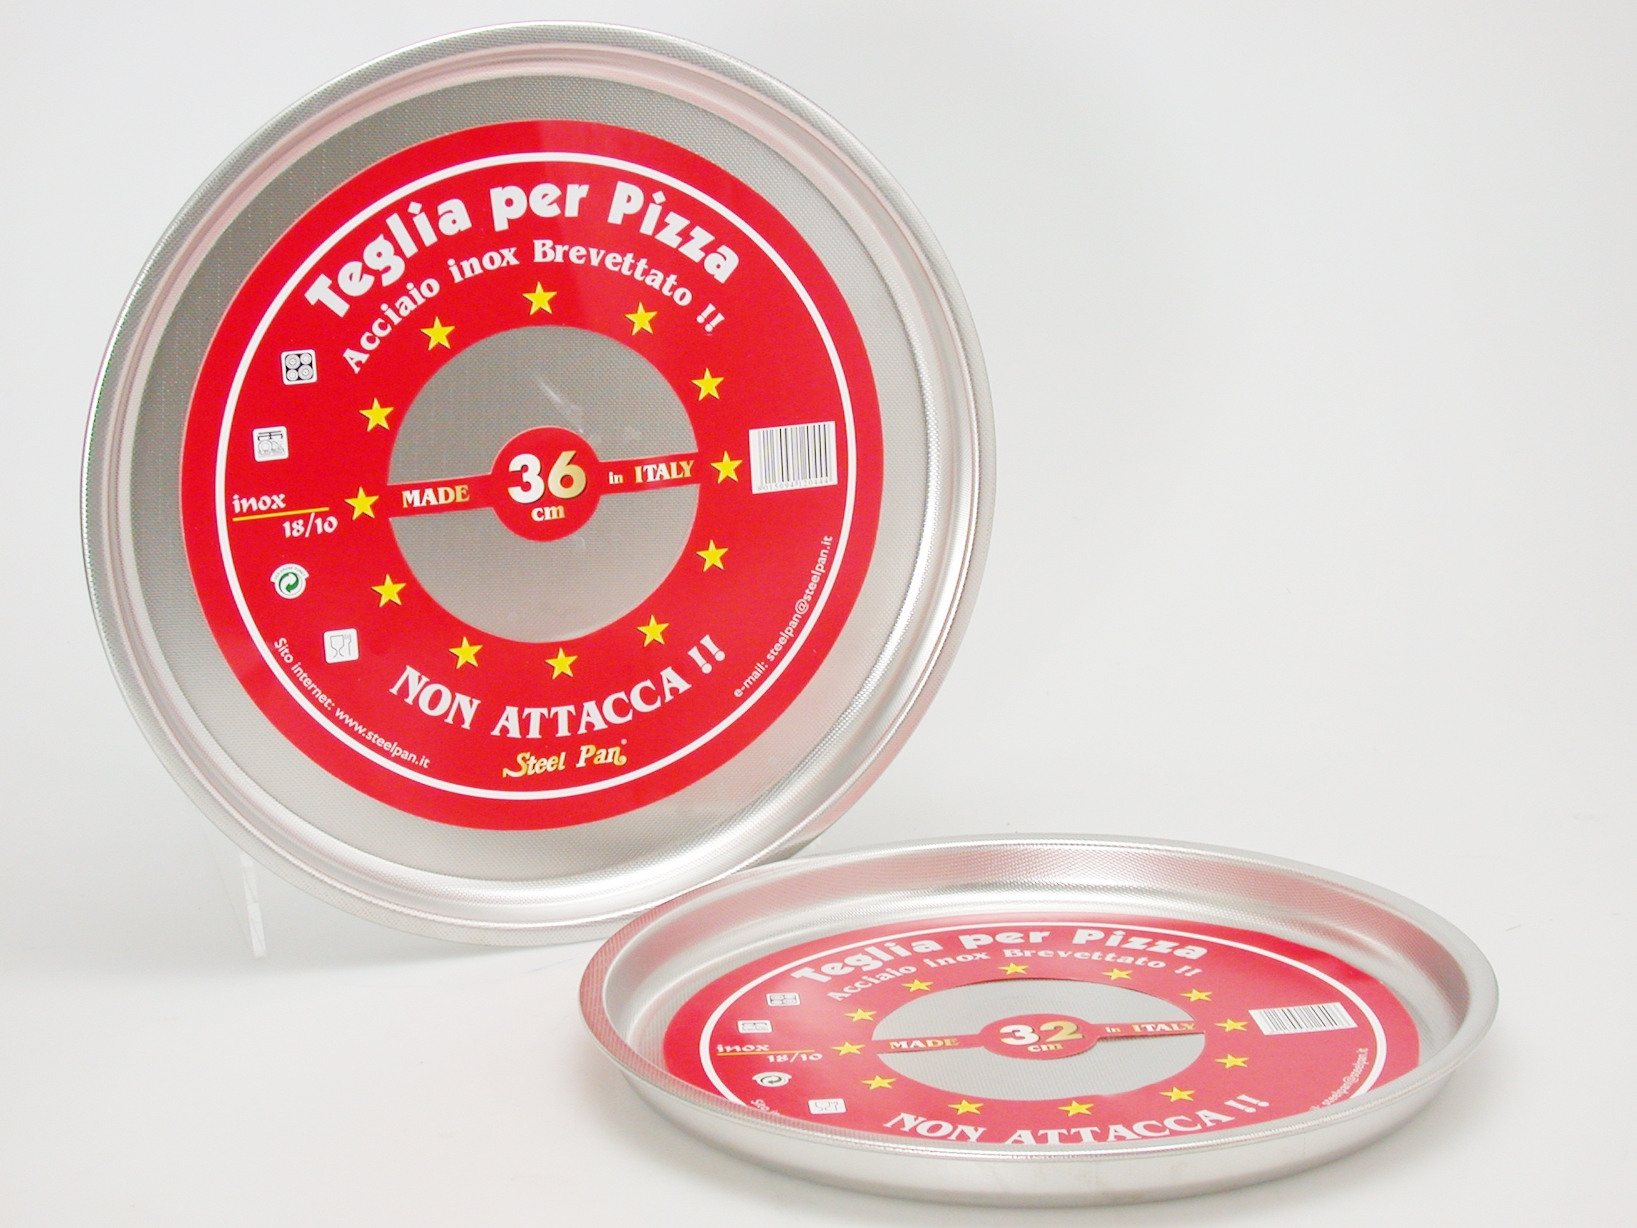 Acquista Teglia Pizza Tondo Nonstick 36 17514023 | Glooke.com